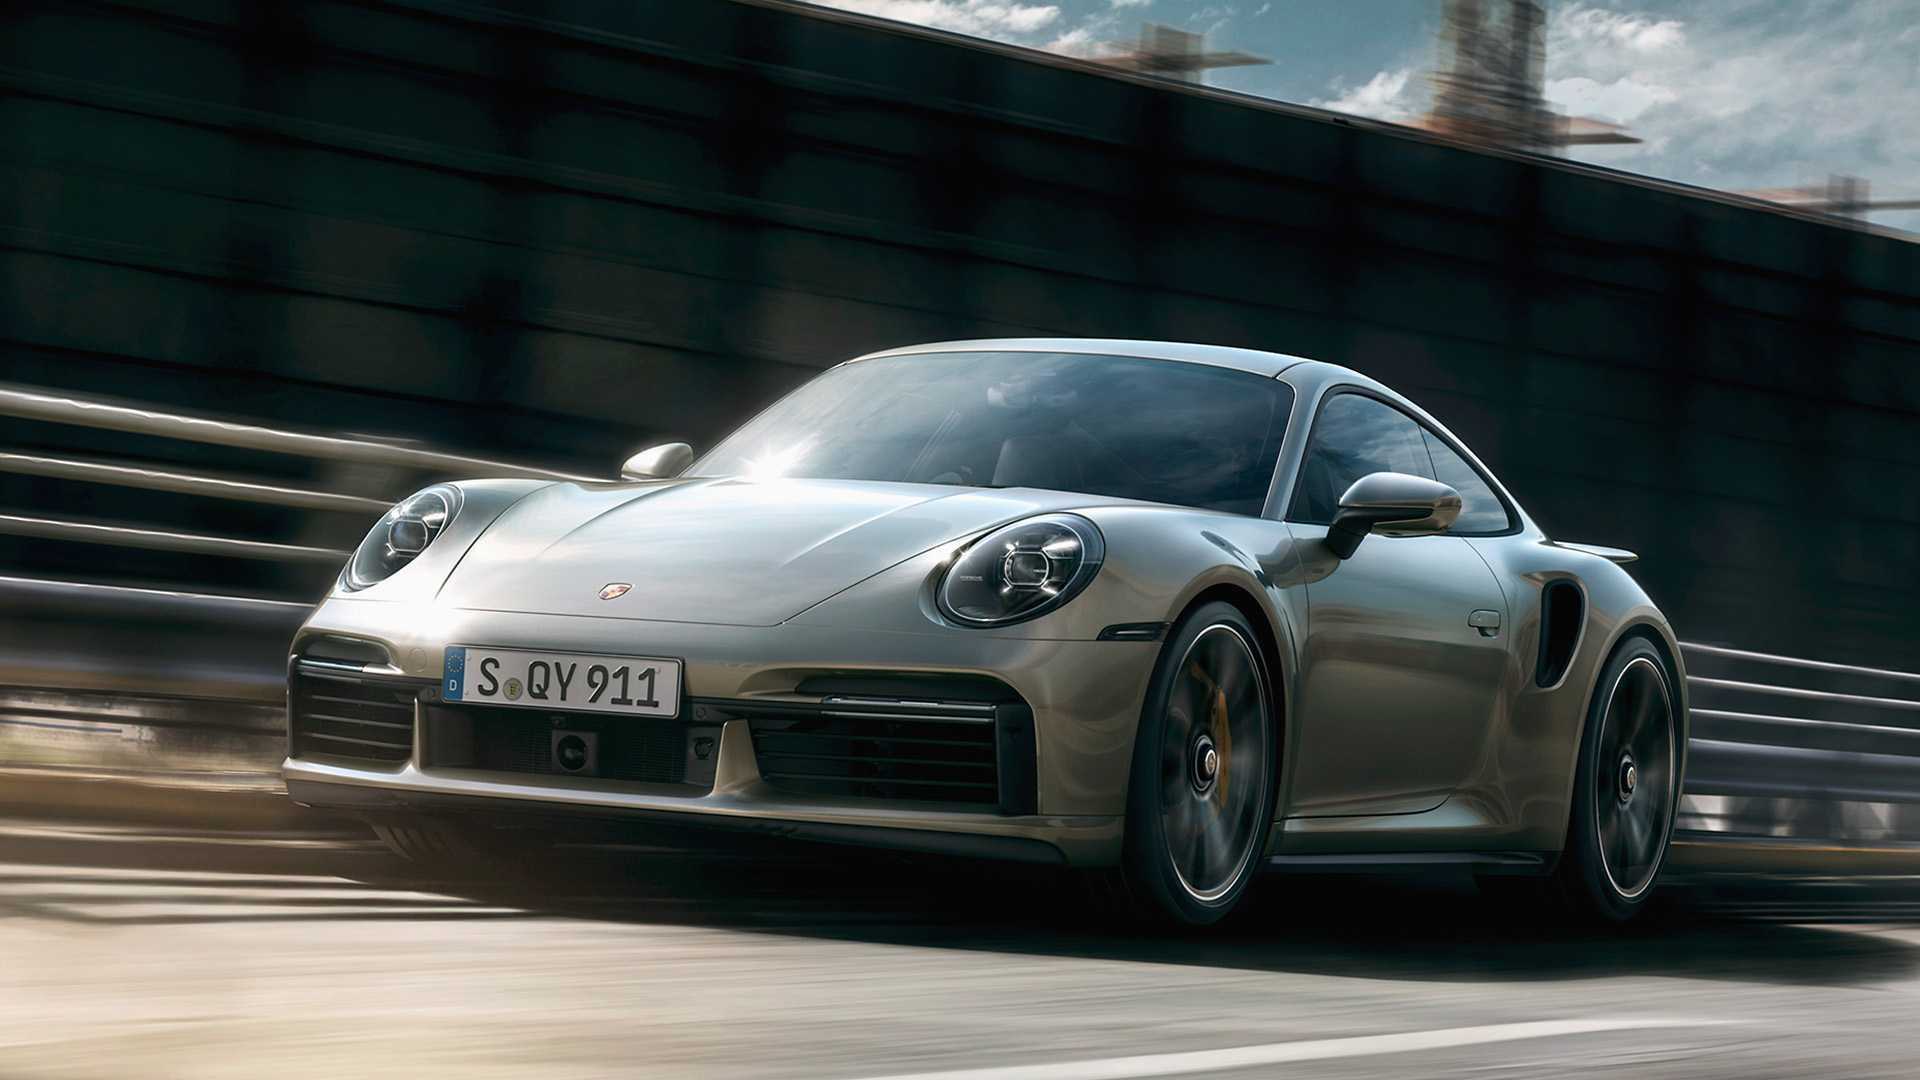 2021 Porsche 911 Turbo S Coupe Cabriolet Revealed With 640 Hp